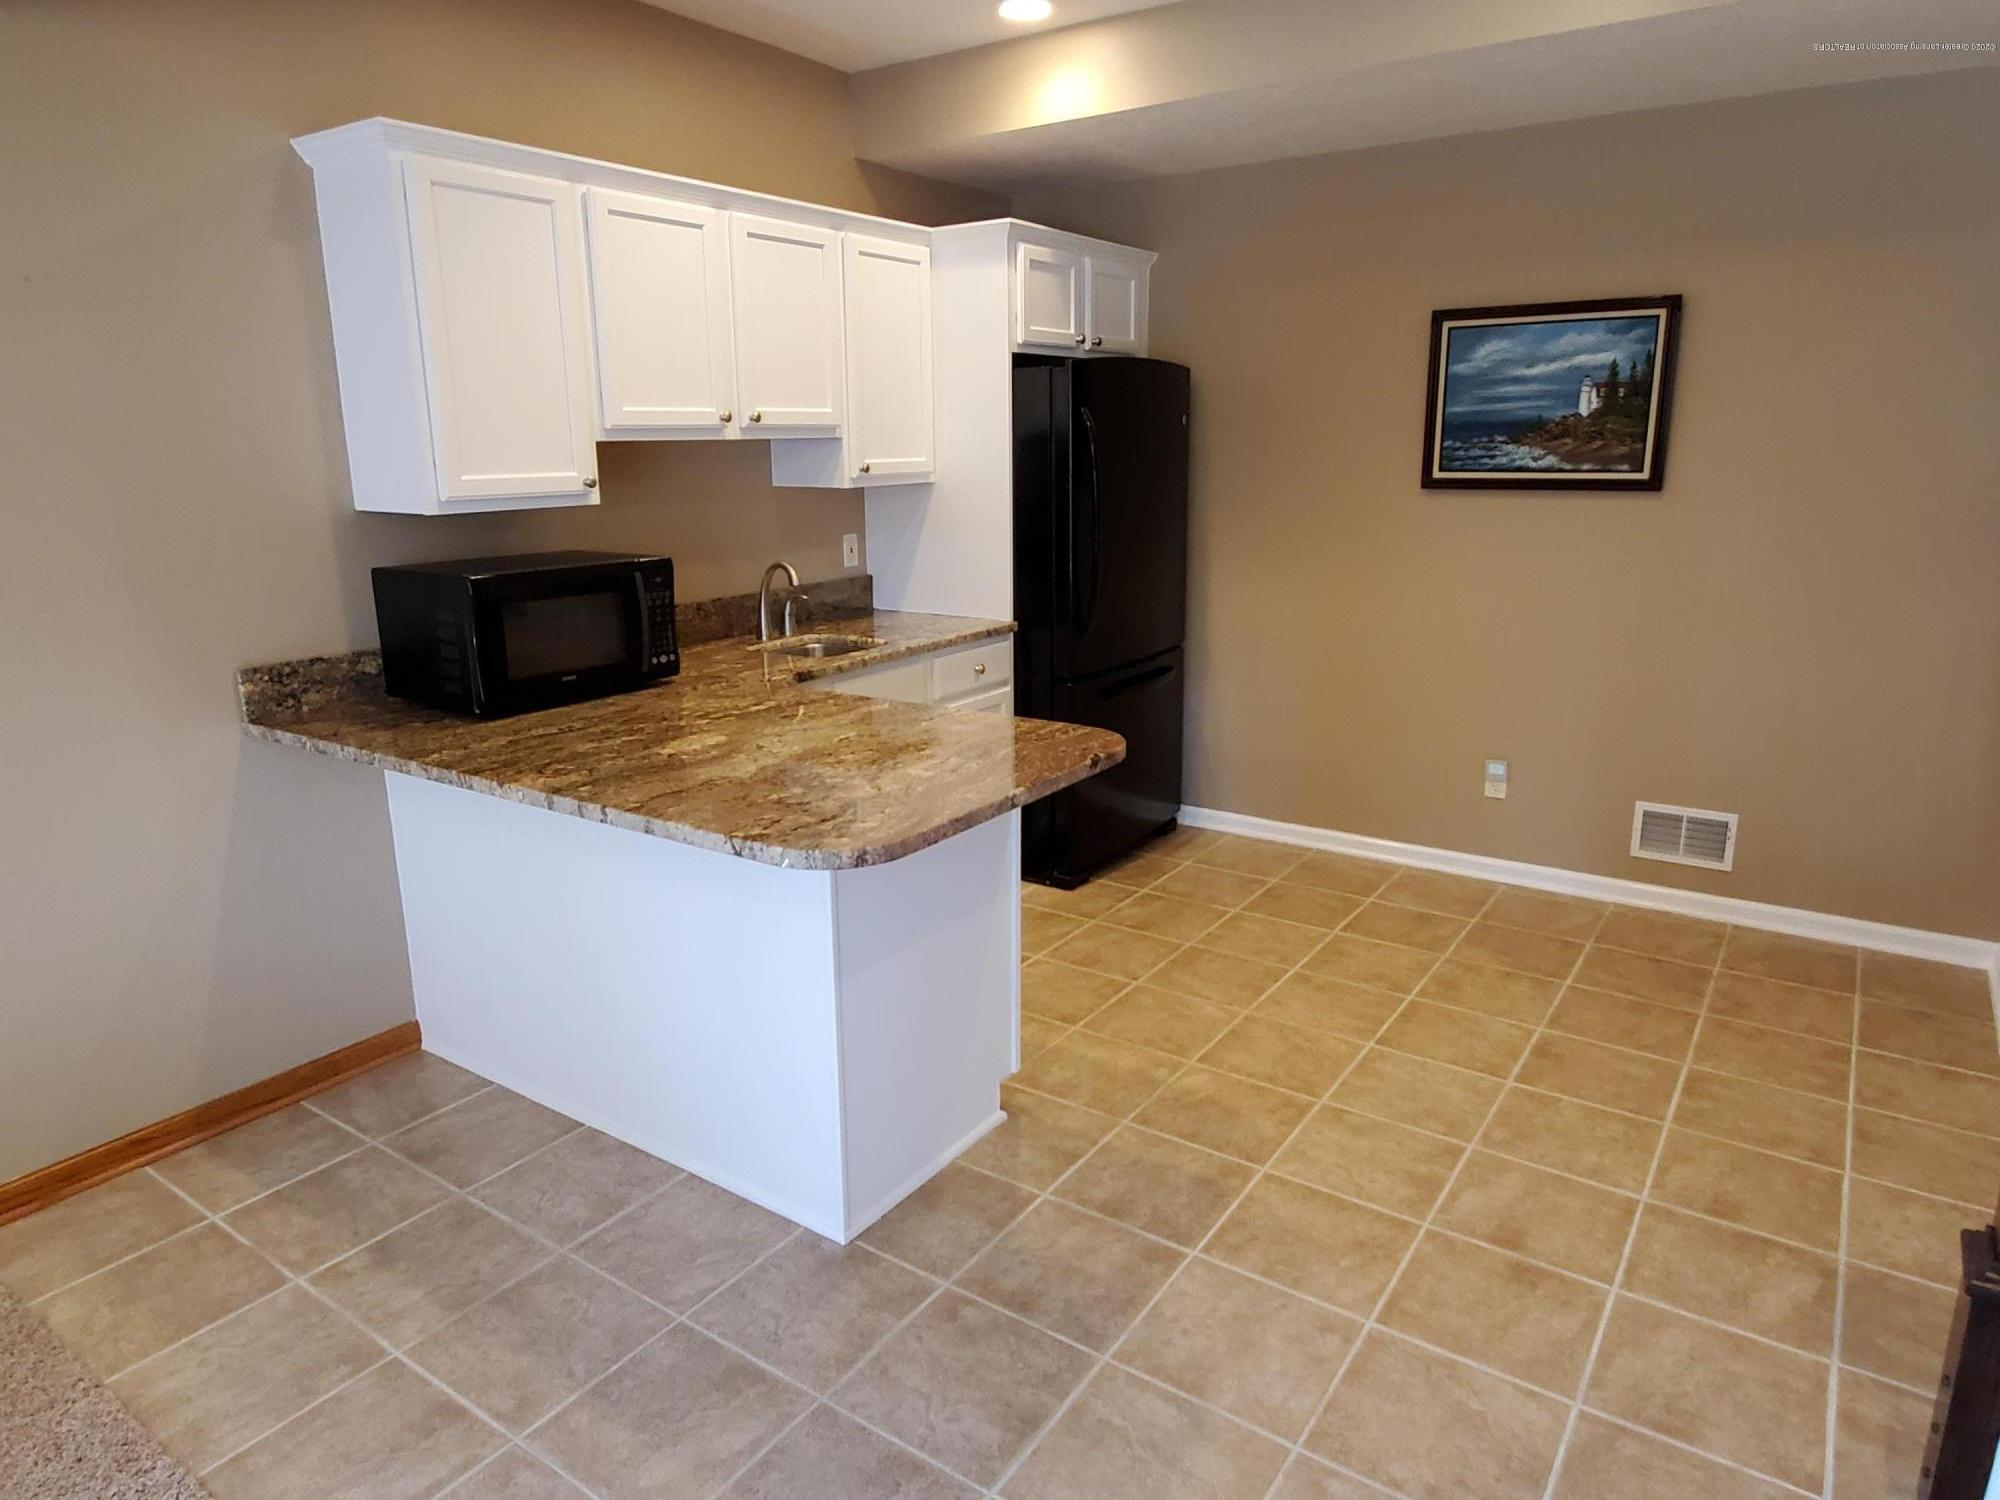 558 N Wheaton Rd - Kitchenette - 52